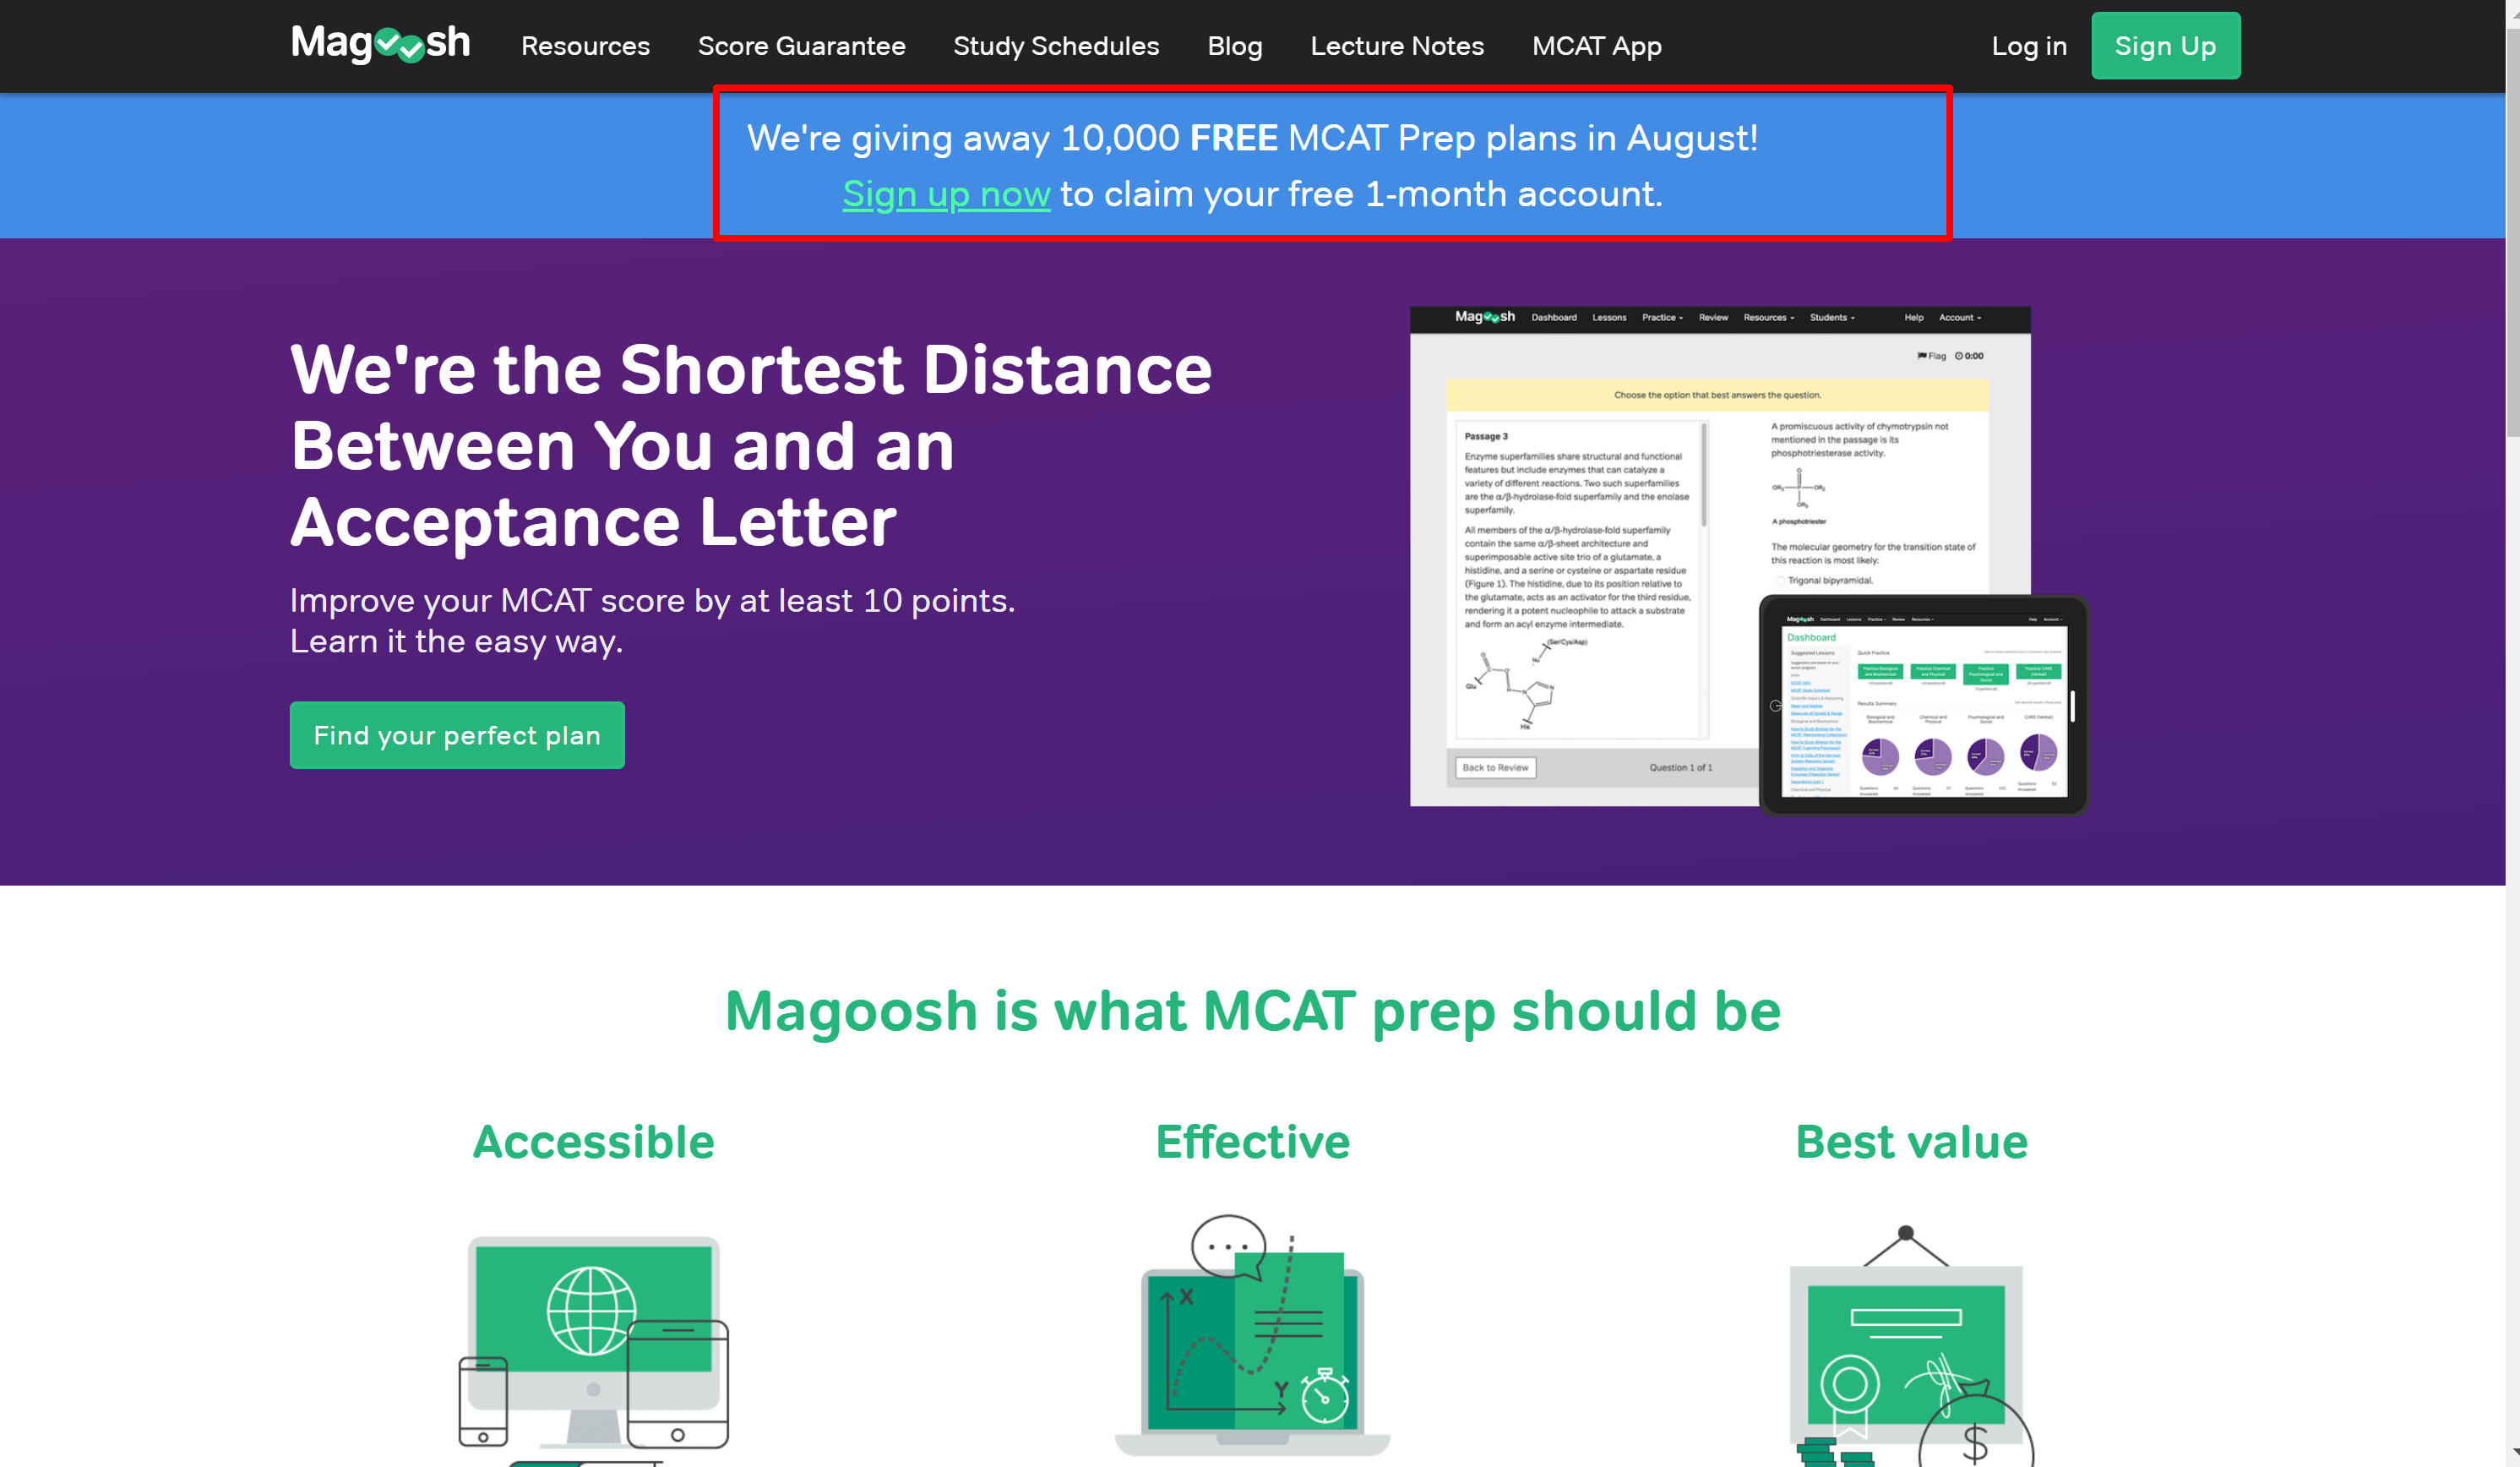 Online Test Prep  Magoosh Coupons Online June